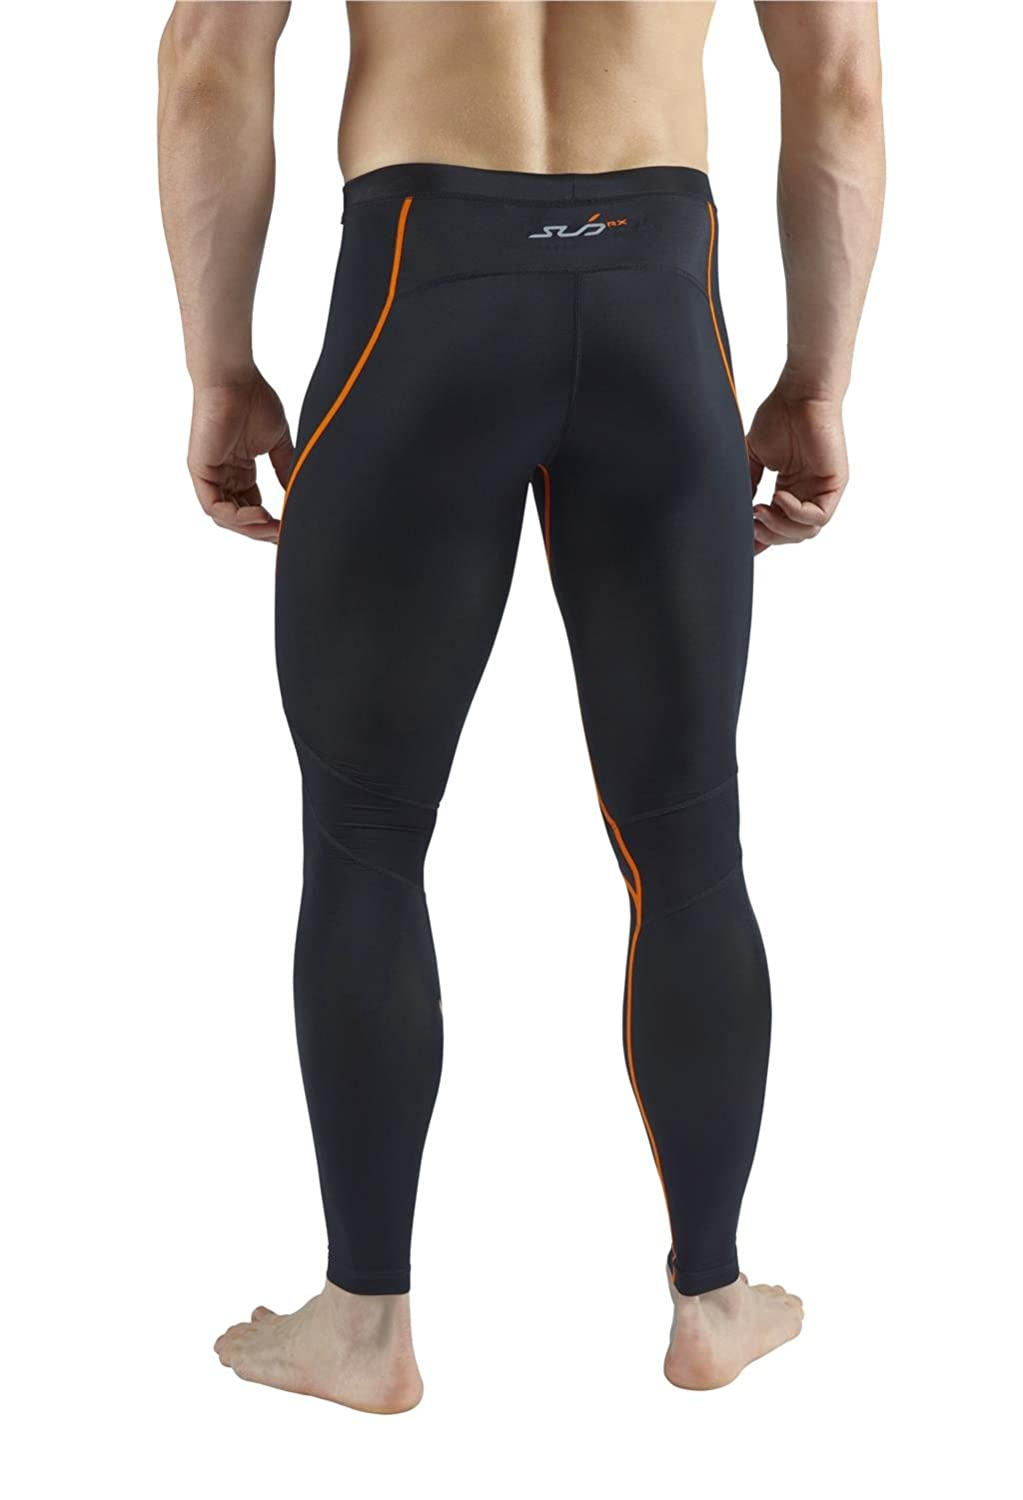 bbdbfd23a2f4d Amazon.com : Sub Sports Elite RX Mens Graduated Compression Base Layer  Tights/Pants : Clothing